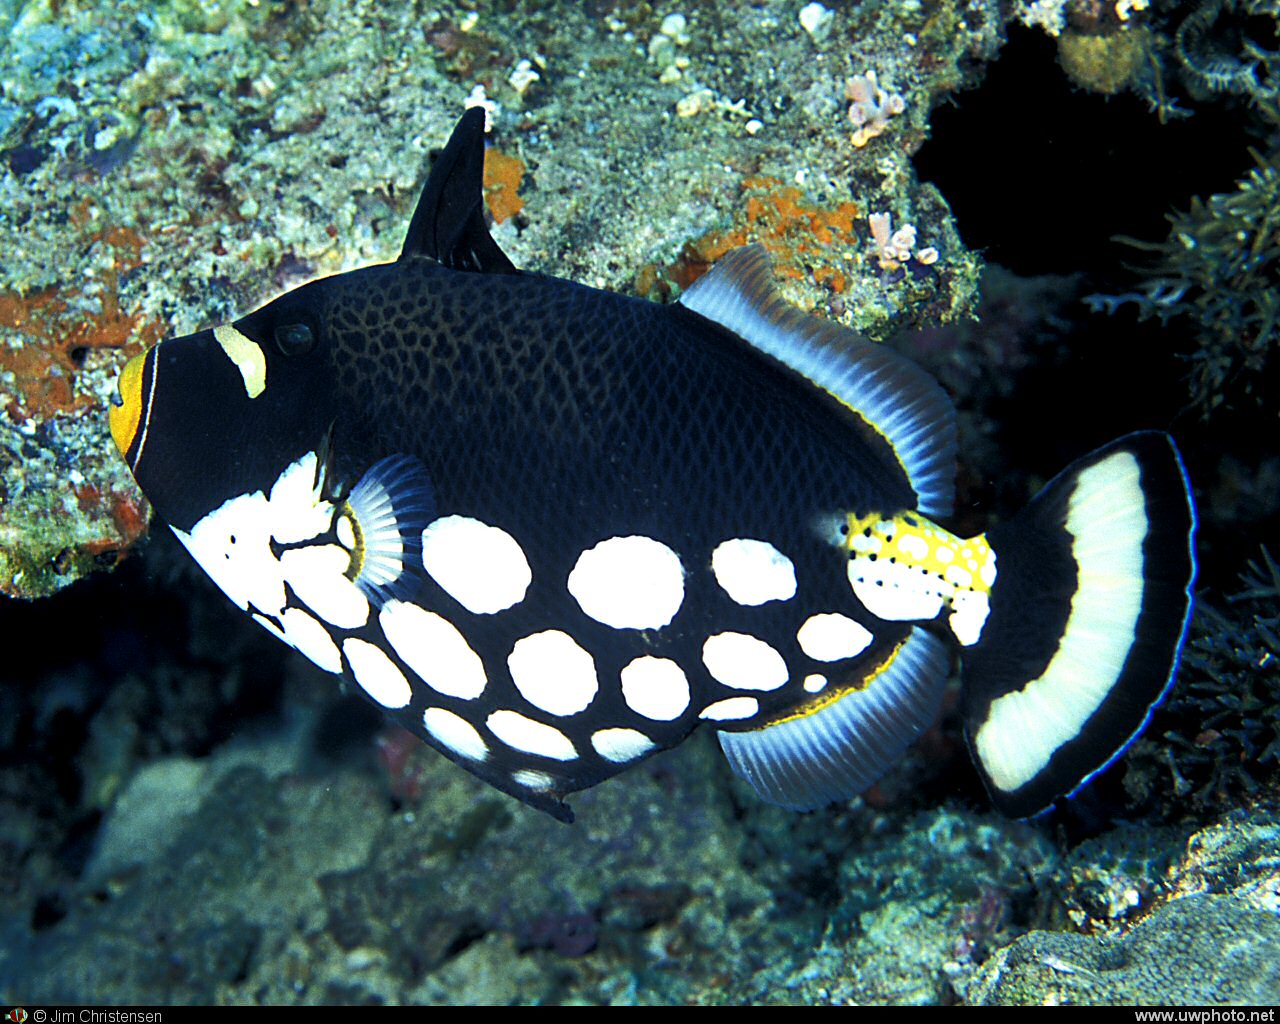 Clown Triggerfish: To elude predators, the Clown Triggerfish <I>Balistoides conspicillum</i>wedges into a hole or under a rock and locks its first dorsal spine upright.